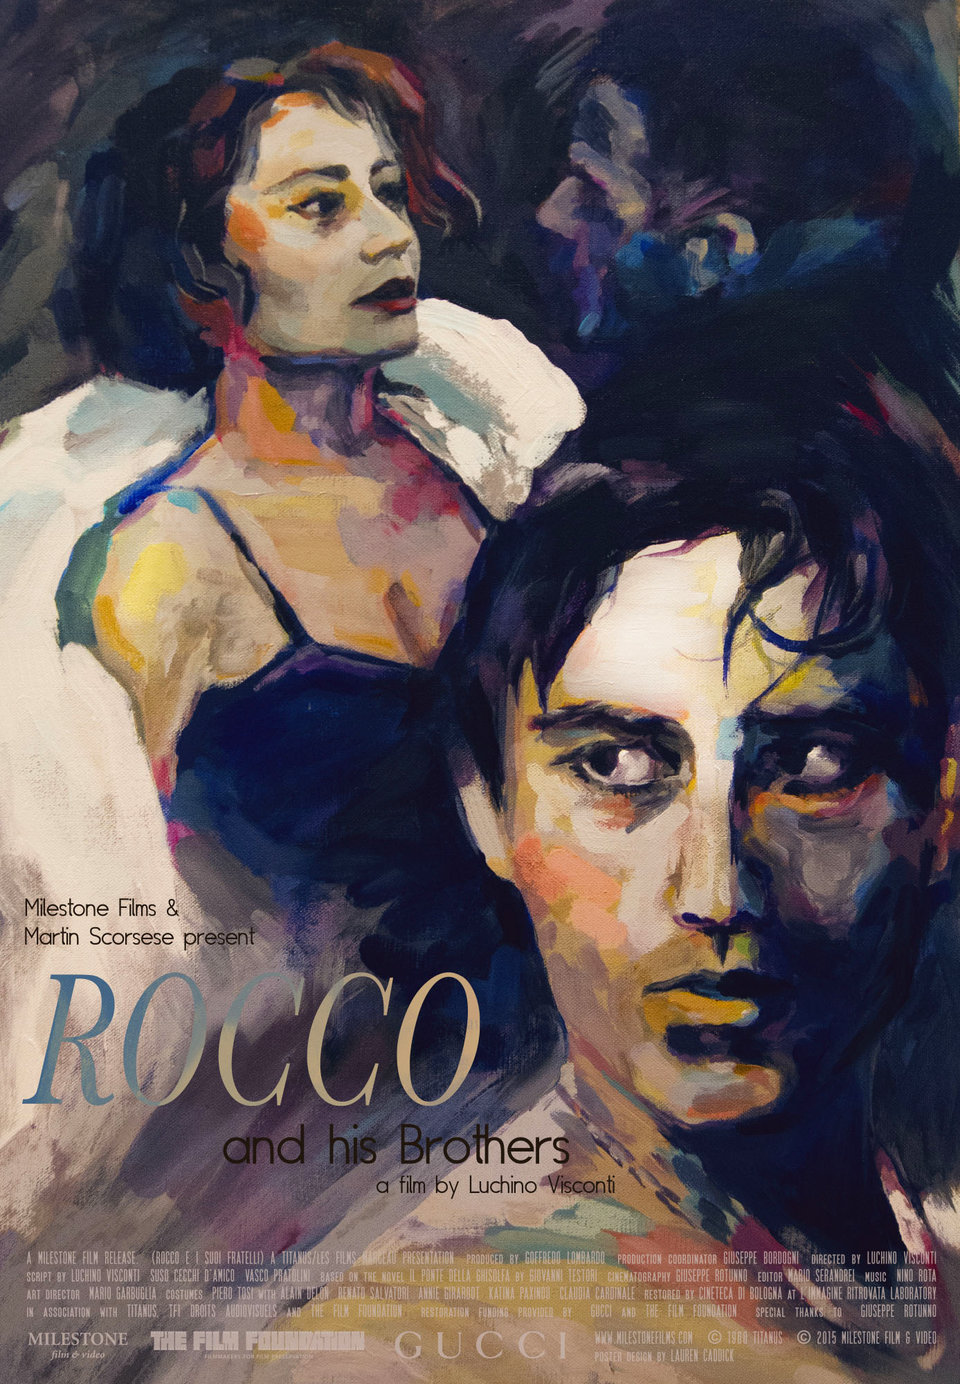 Rocco and His Brothers R2015 U.S. One Sheet Poster